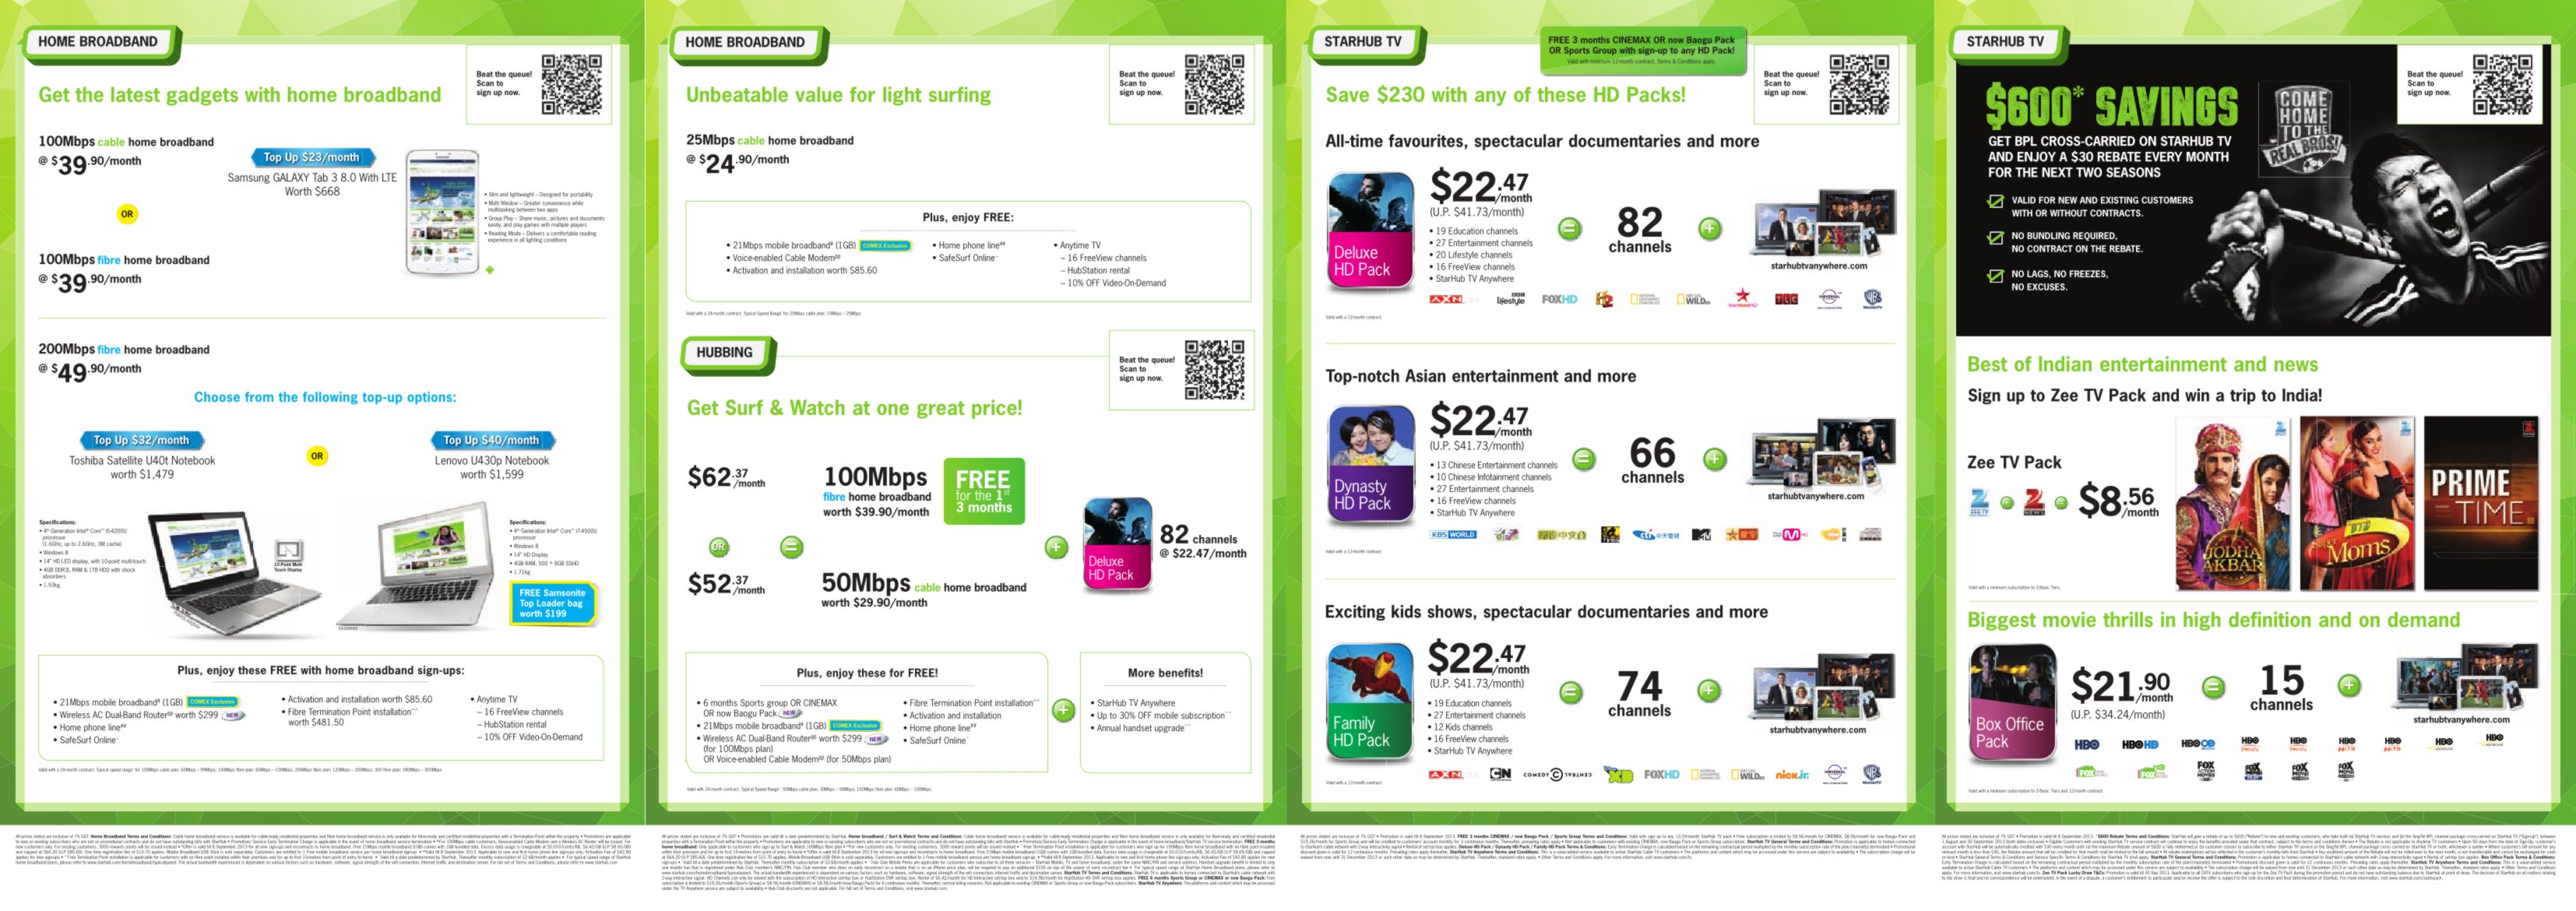 COMEX 2013 - StarHub Promotions Price List - Page2